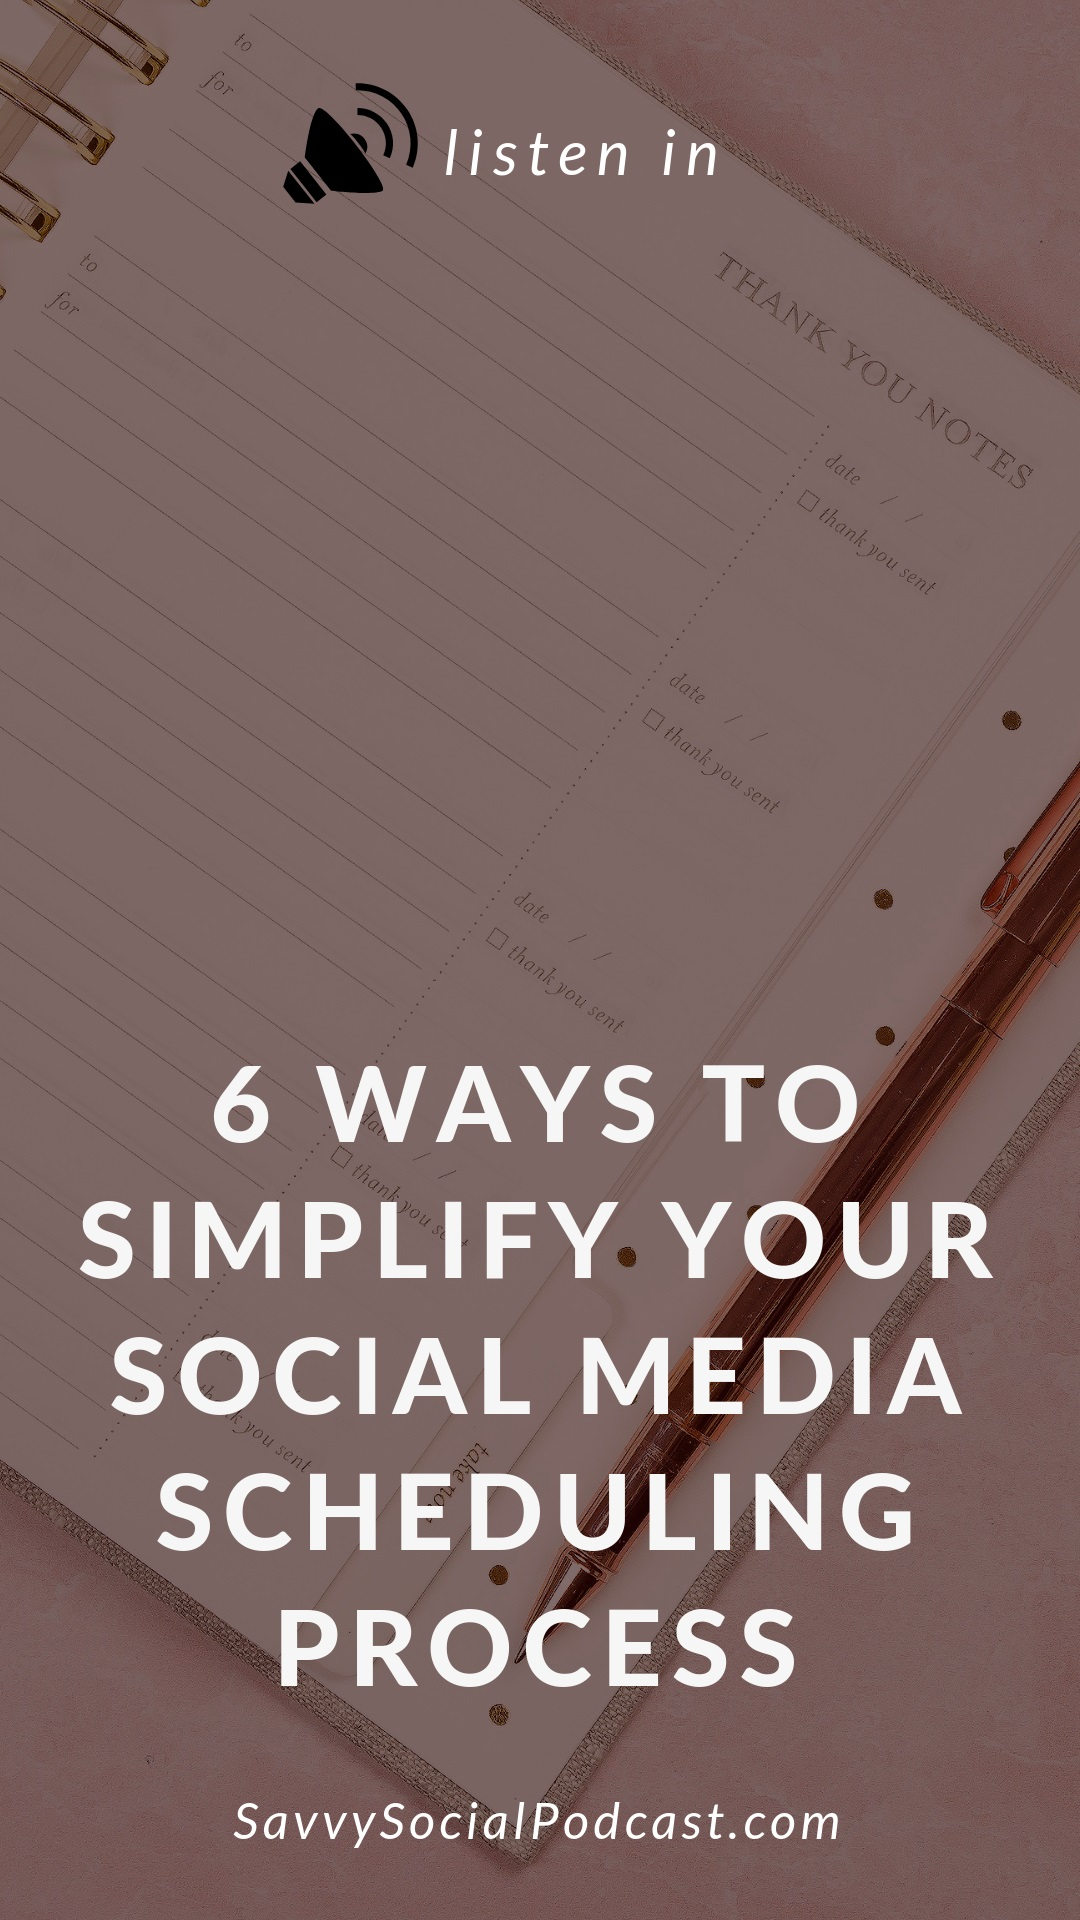 This episode is dedicated to anyone who has ever experienced decision fatigue. Deciding what content to post on your social media can be overwhelming if you don't already have a plan in place. Today, I'm sharing the exact steps from my Savvy Social School to help simplify your social media scheduling process and to make your life easier!